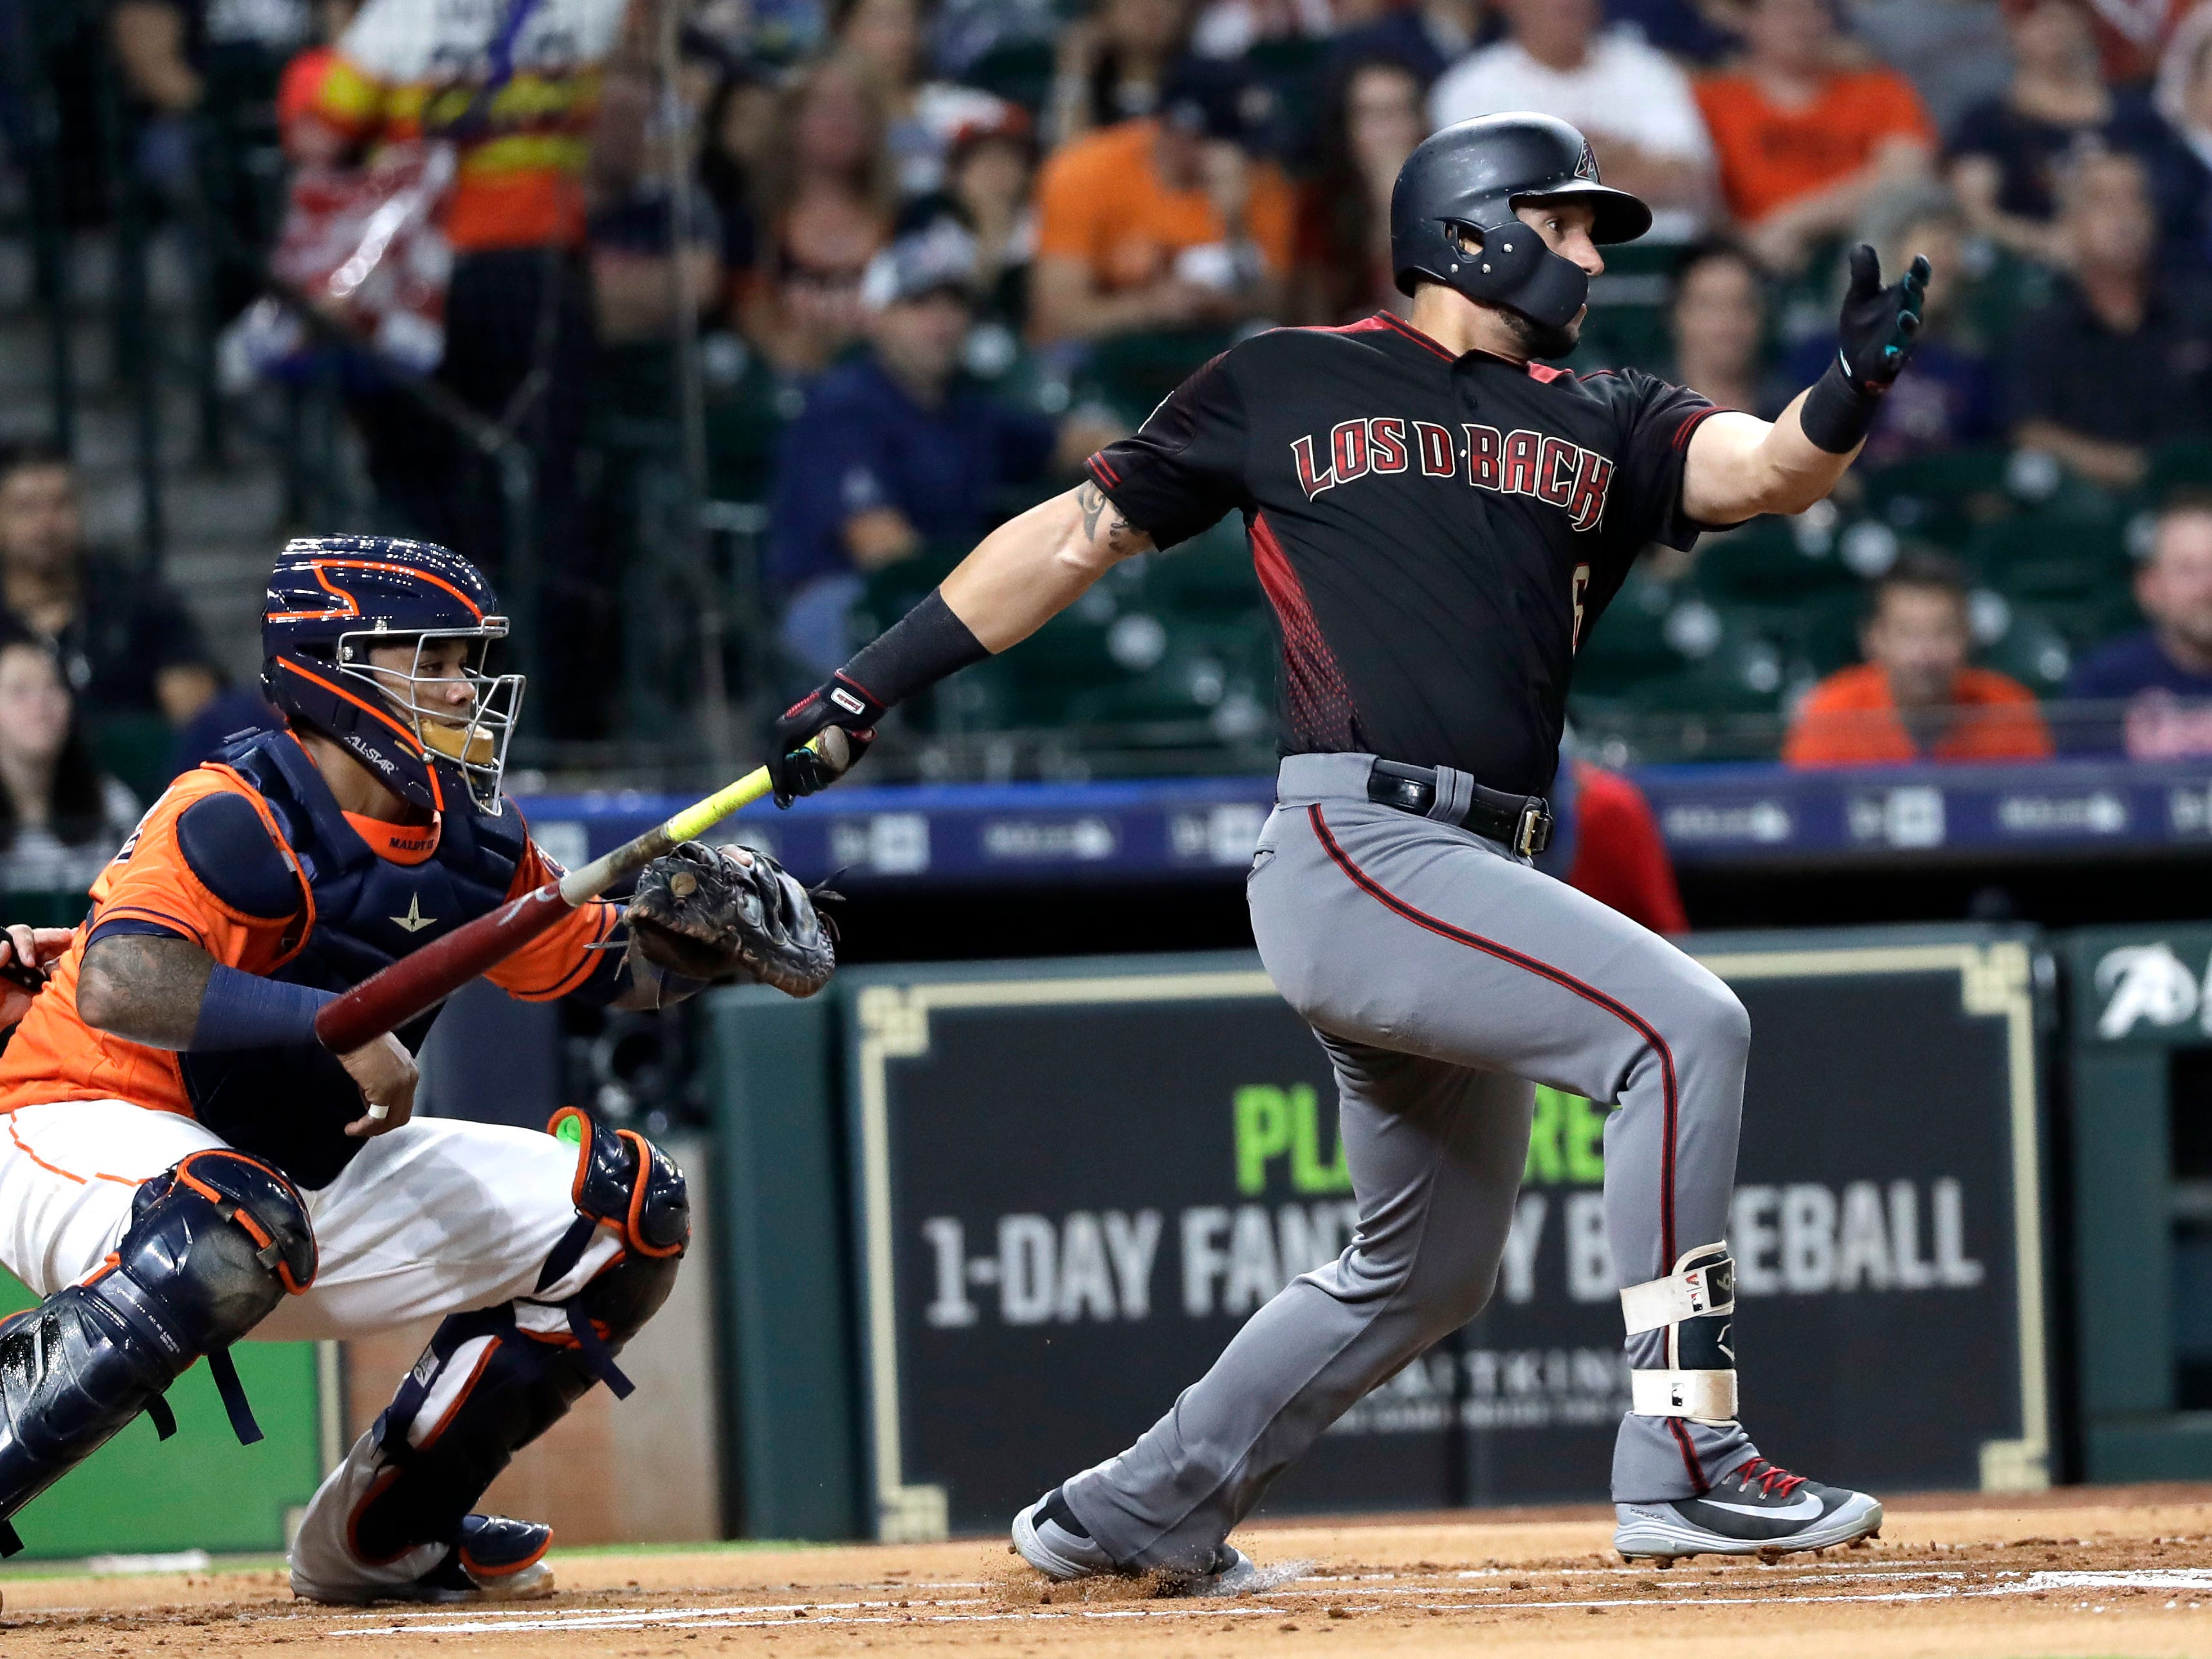 Arizona Diamondbacks' David Peralta, right, hits a two-run single as Houston Astros catcher Martin Maldonado reaches for the pitch during the first inning of a baseball game Friday, Sept. 14, 2018, in Houston.